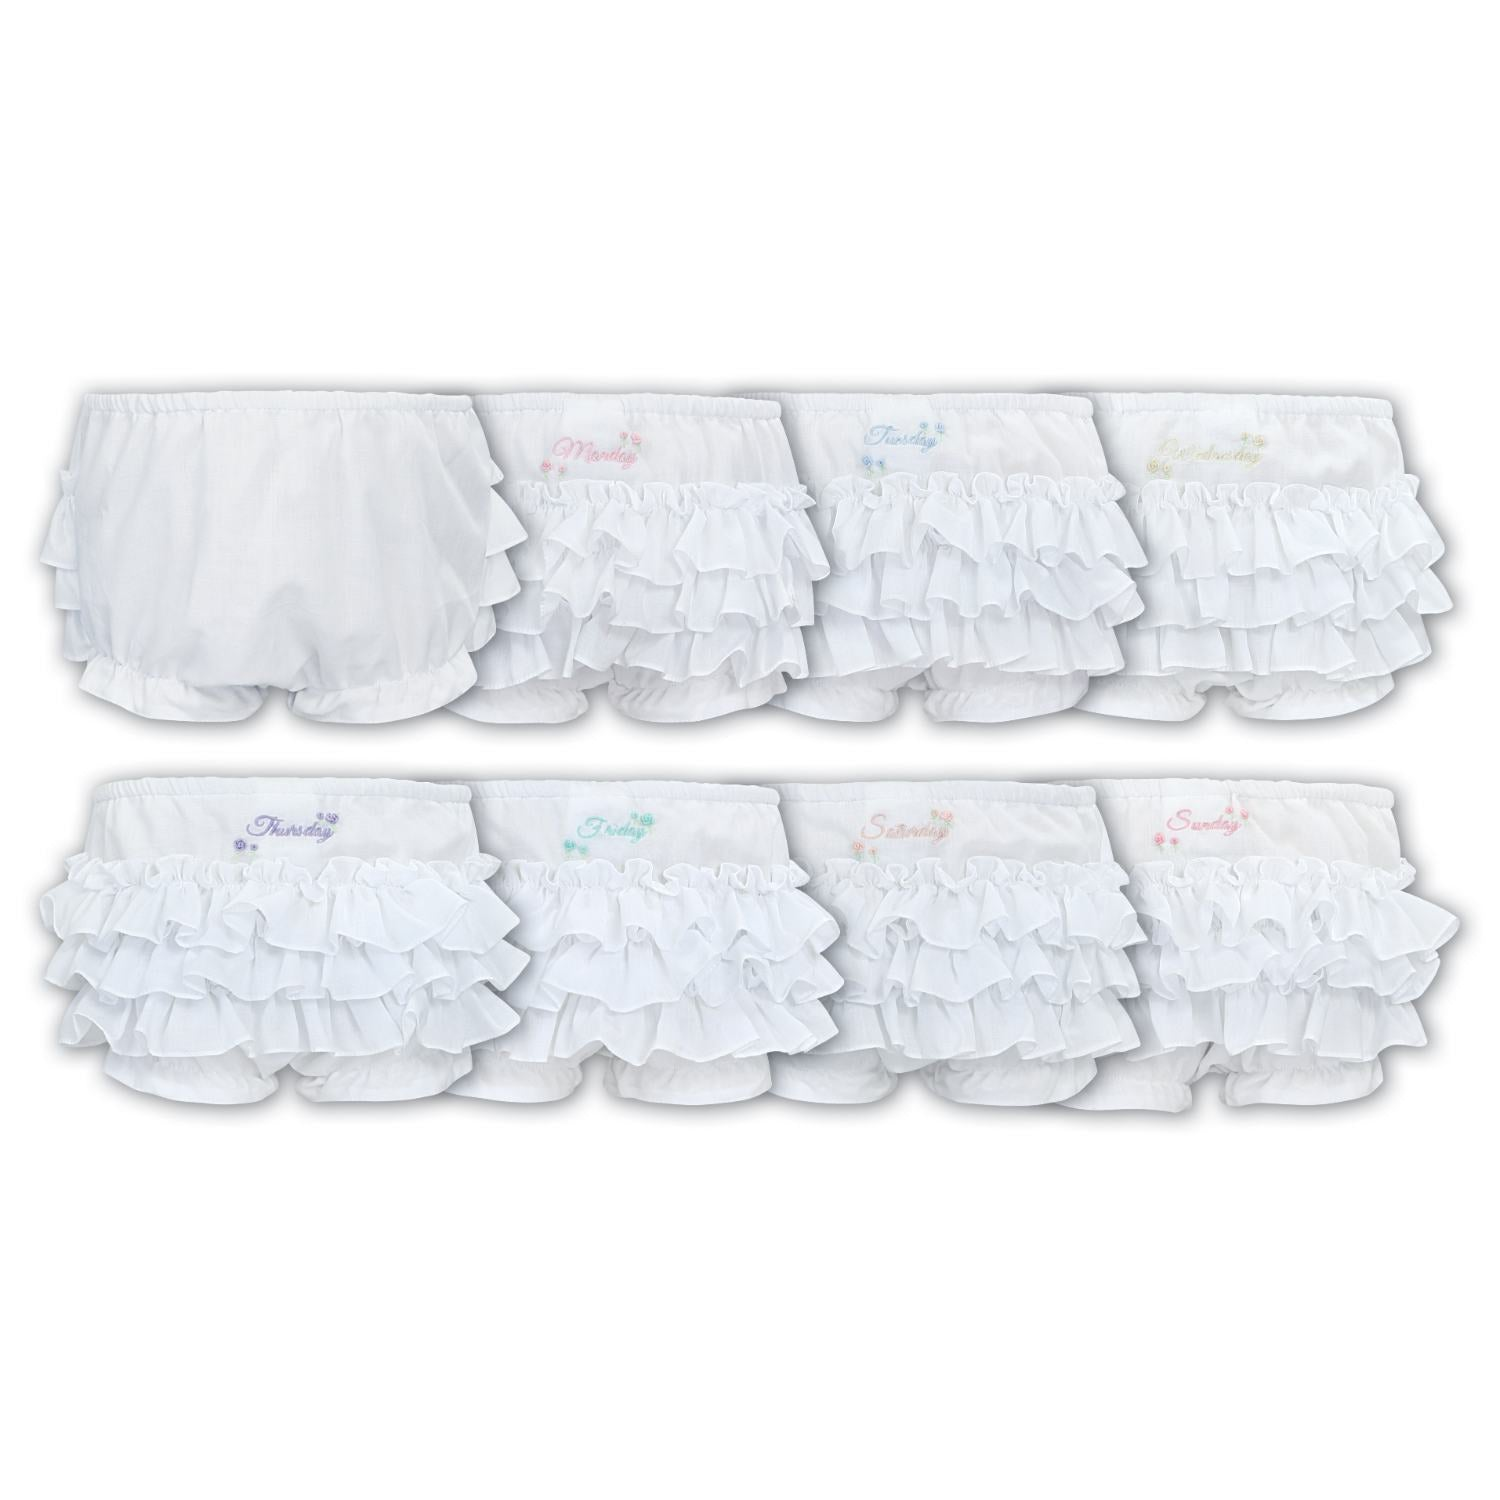 SARAH LOUISE FRILLY PANTIES GIFT SET 3770P